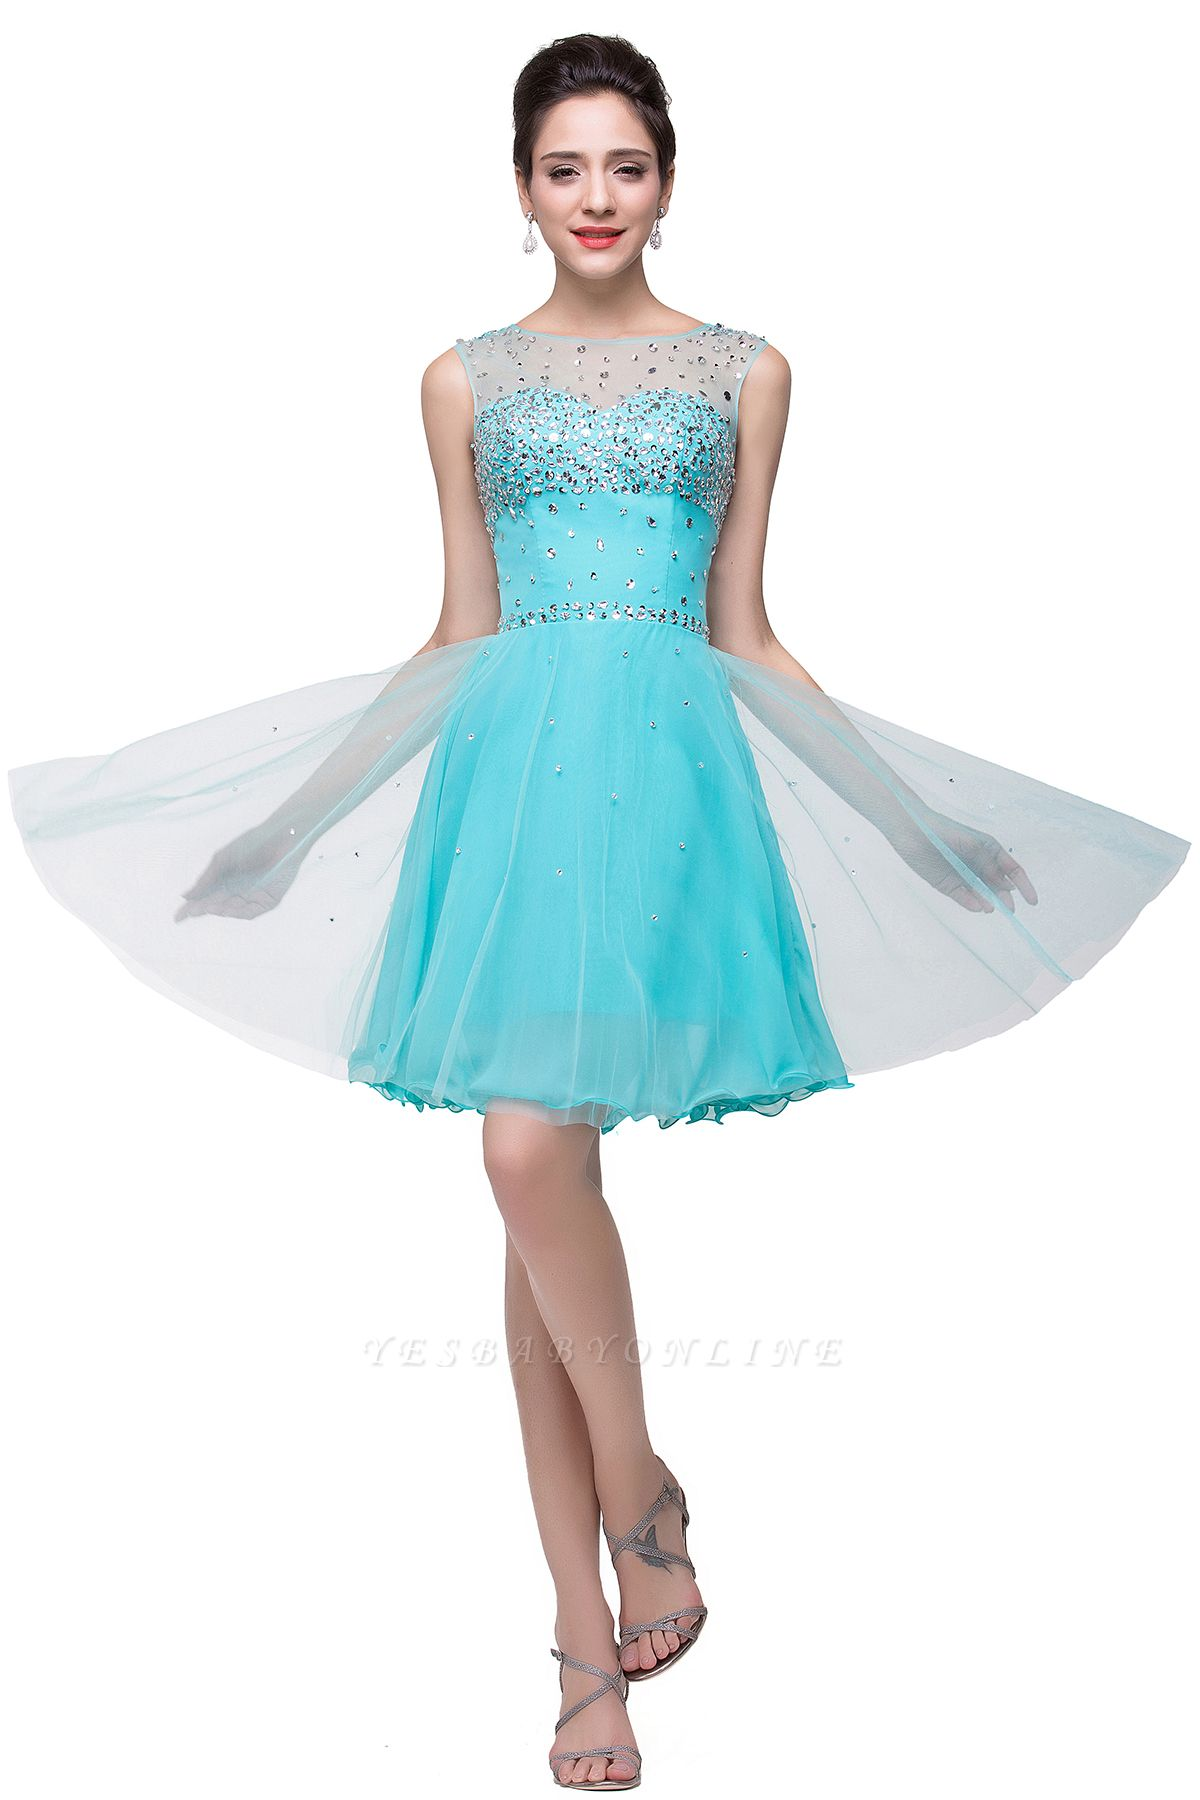 Cheap Open Back Sleeveless Chiffon Homecoming Dress Crystal Beads Tulle Short Prom Dress in Stock